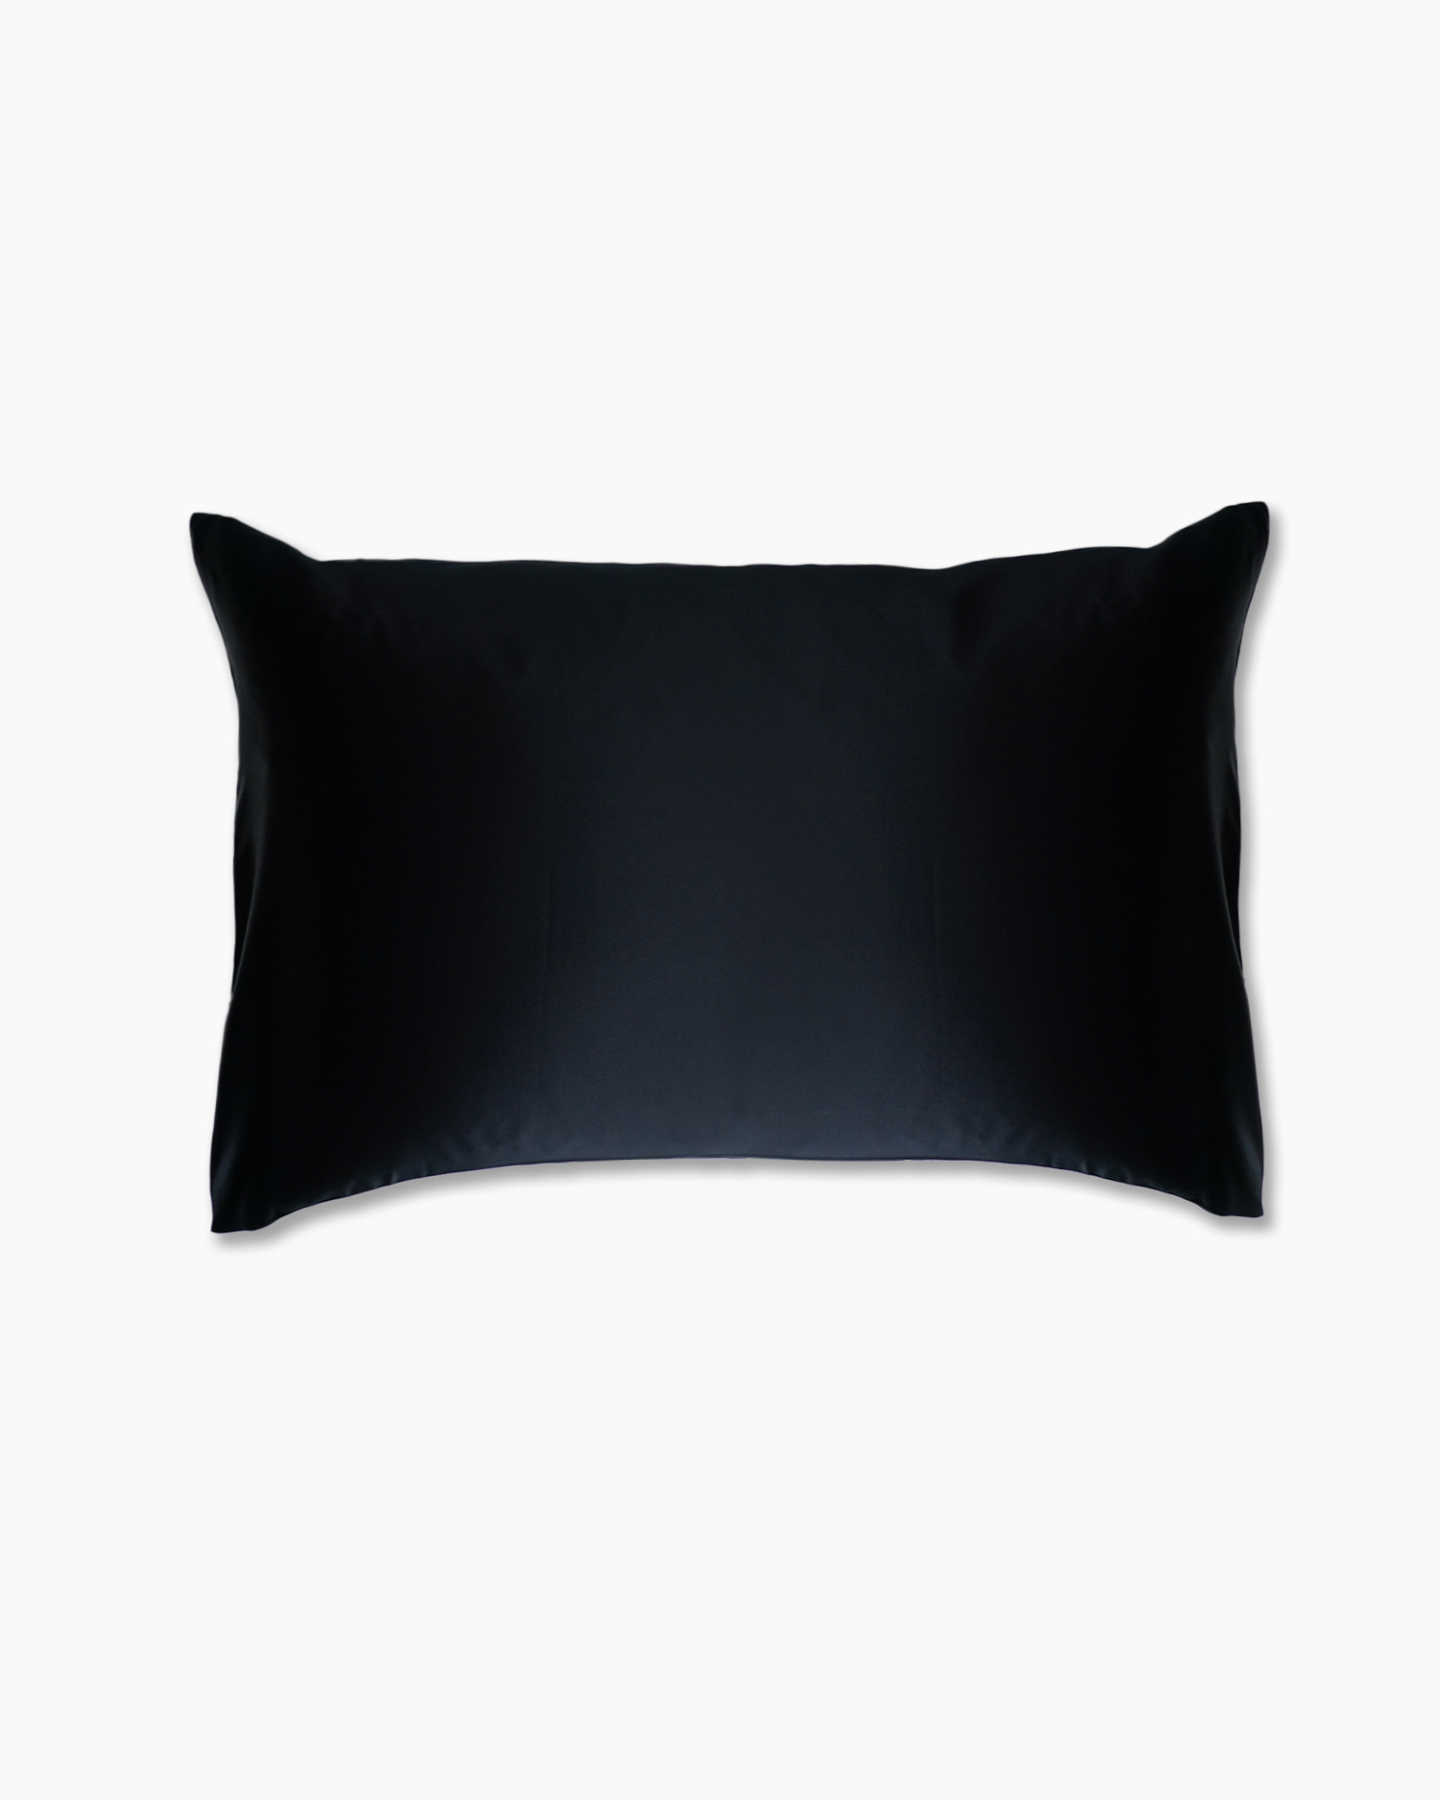 Mulberry silk pillowcase in black